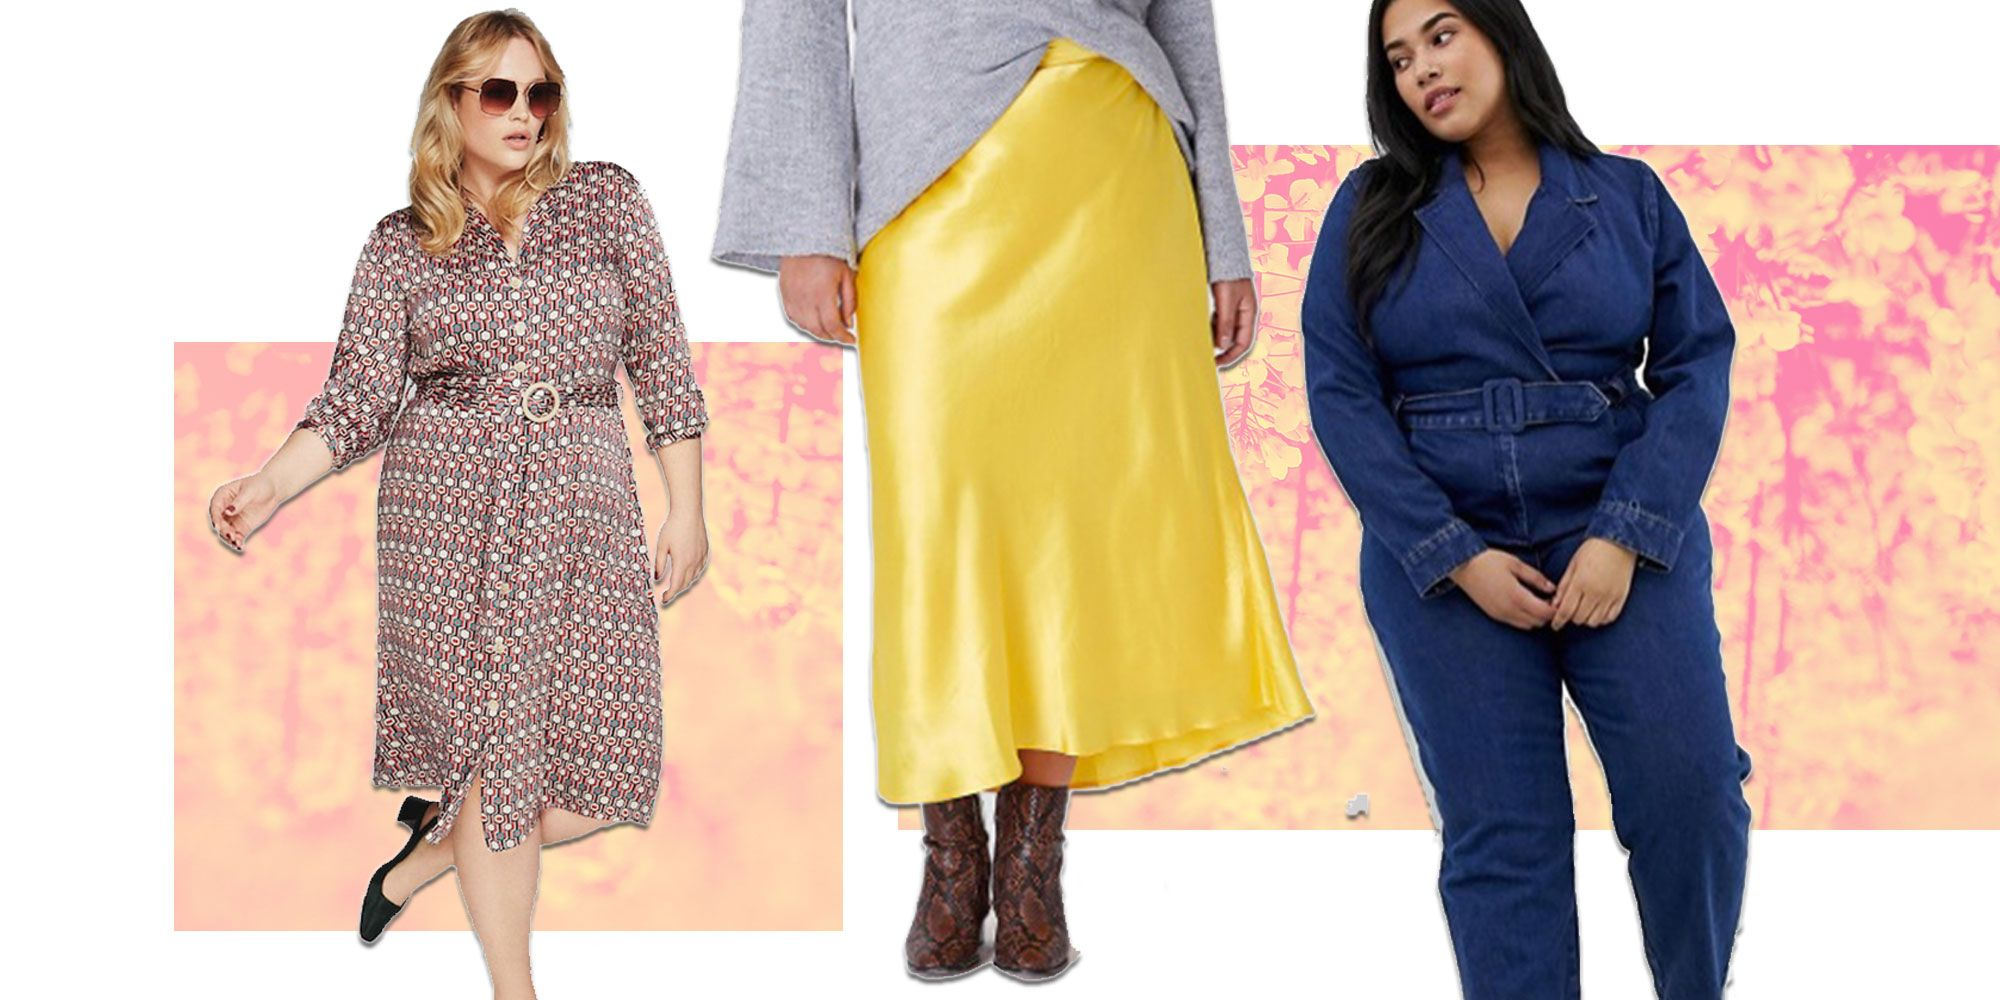 bb2607c56 Plus Size Clothing - The 11 Best Shops for Curvy Girls